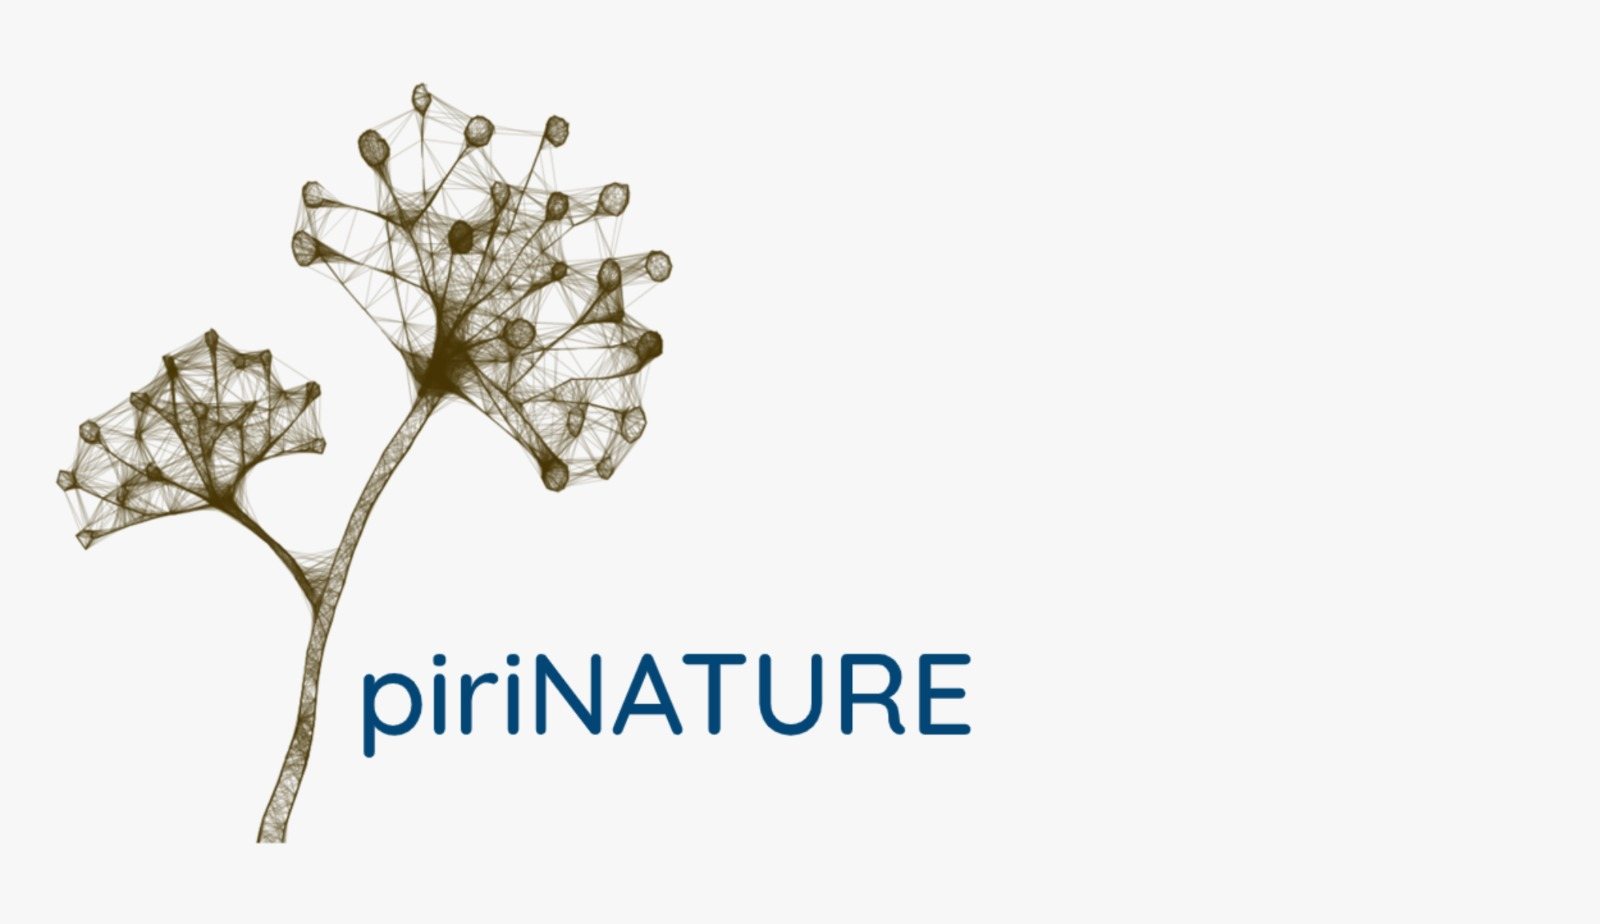 PIRINATURE